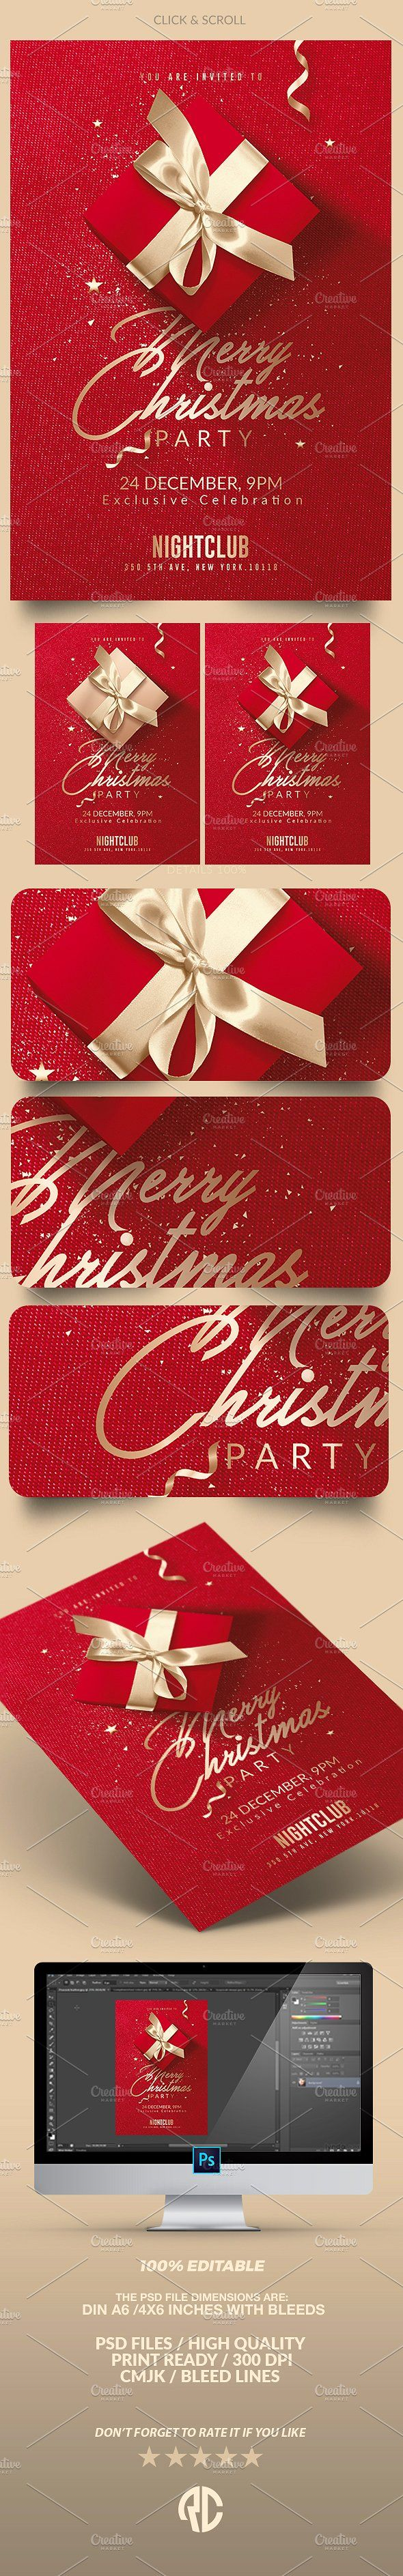 Red Christmas - Invitation | Flyer - Templates - 5